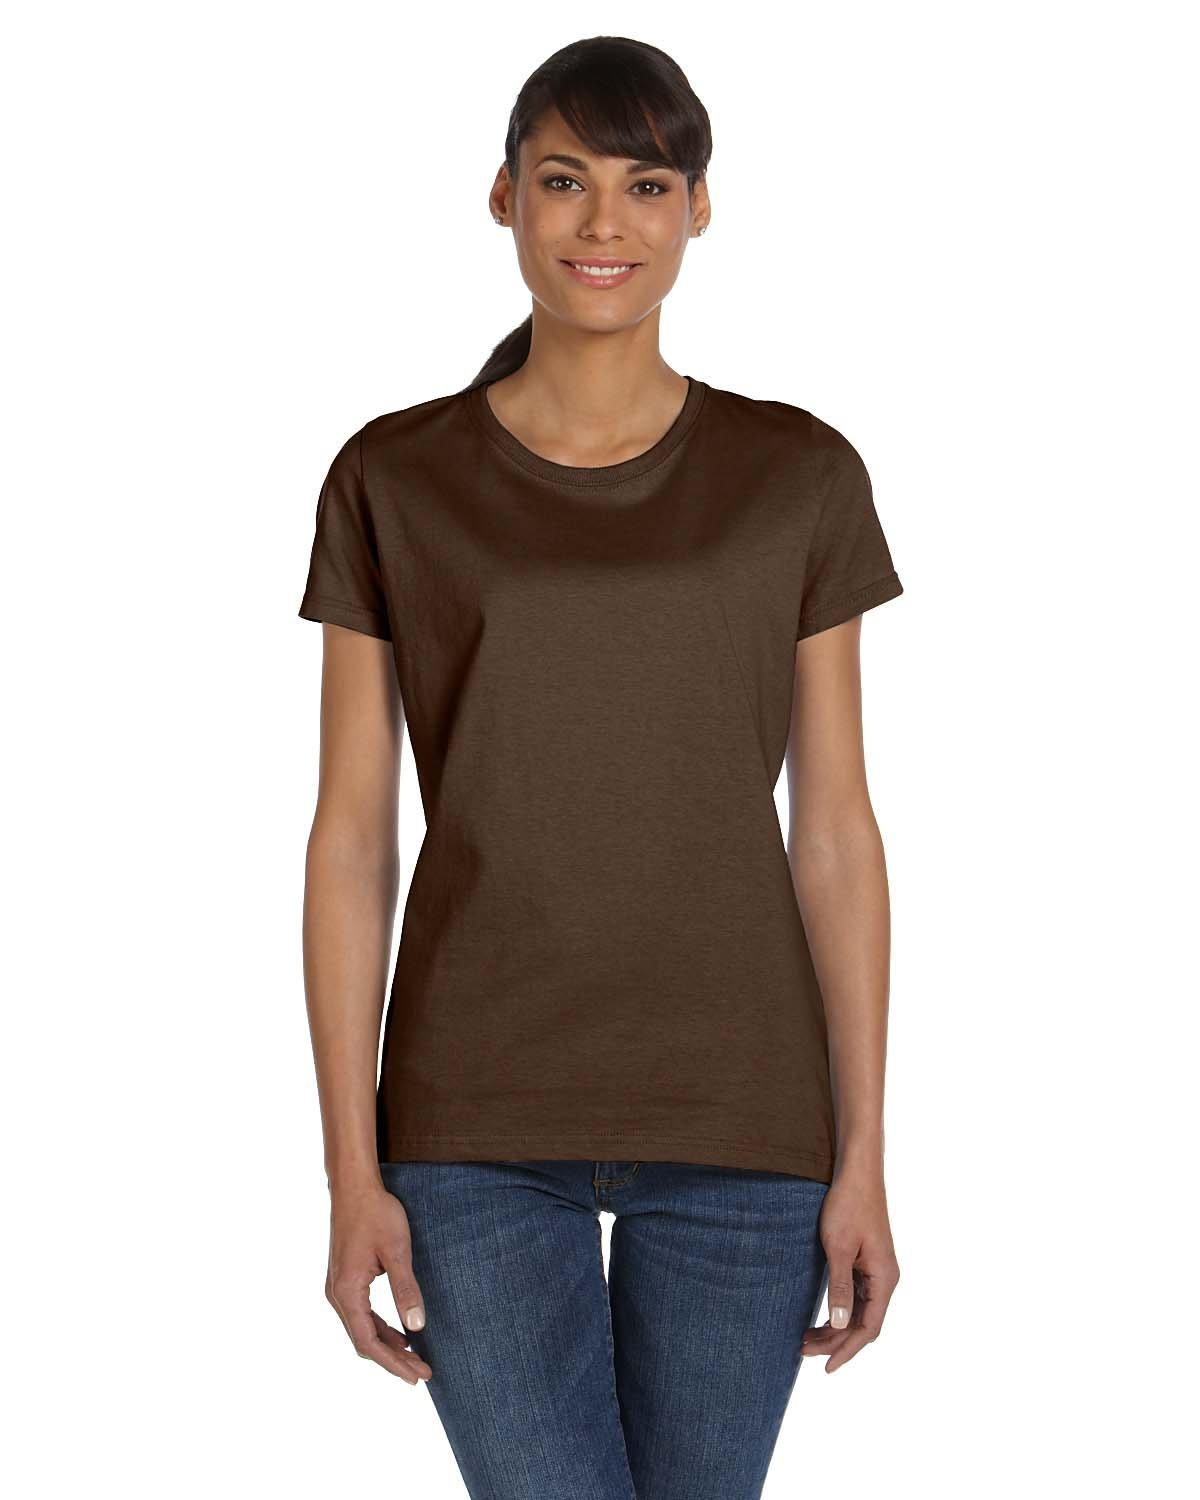 Fruit of the Loom Ladies' HD Cotton™ T-Shirt CHOCOLATE